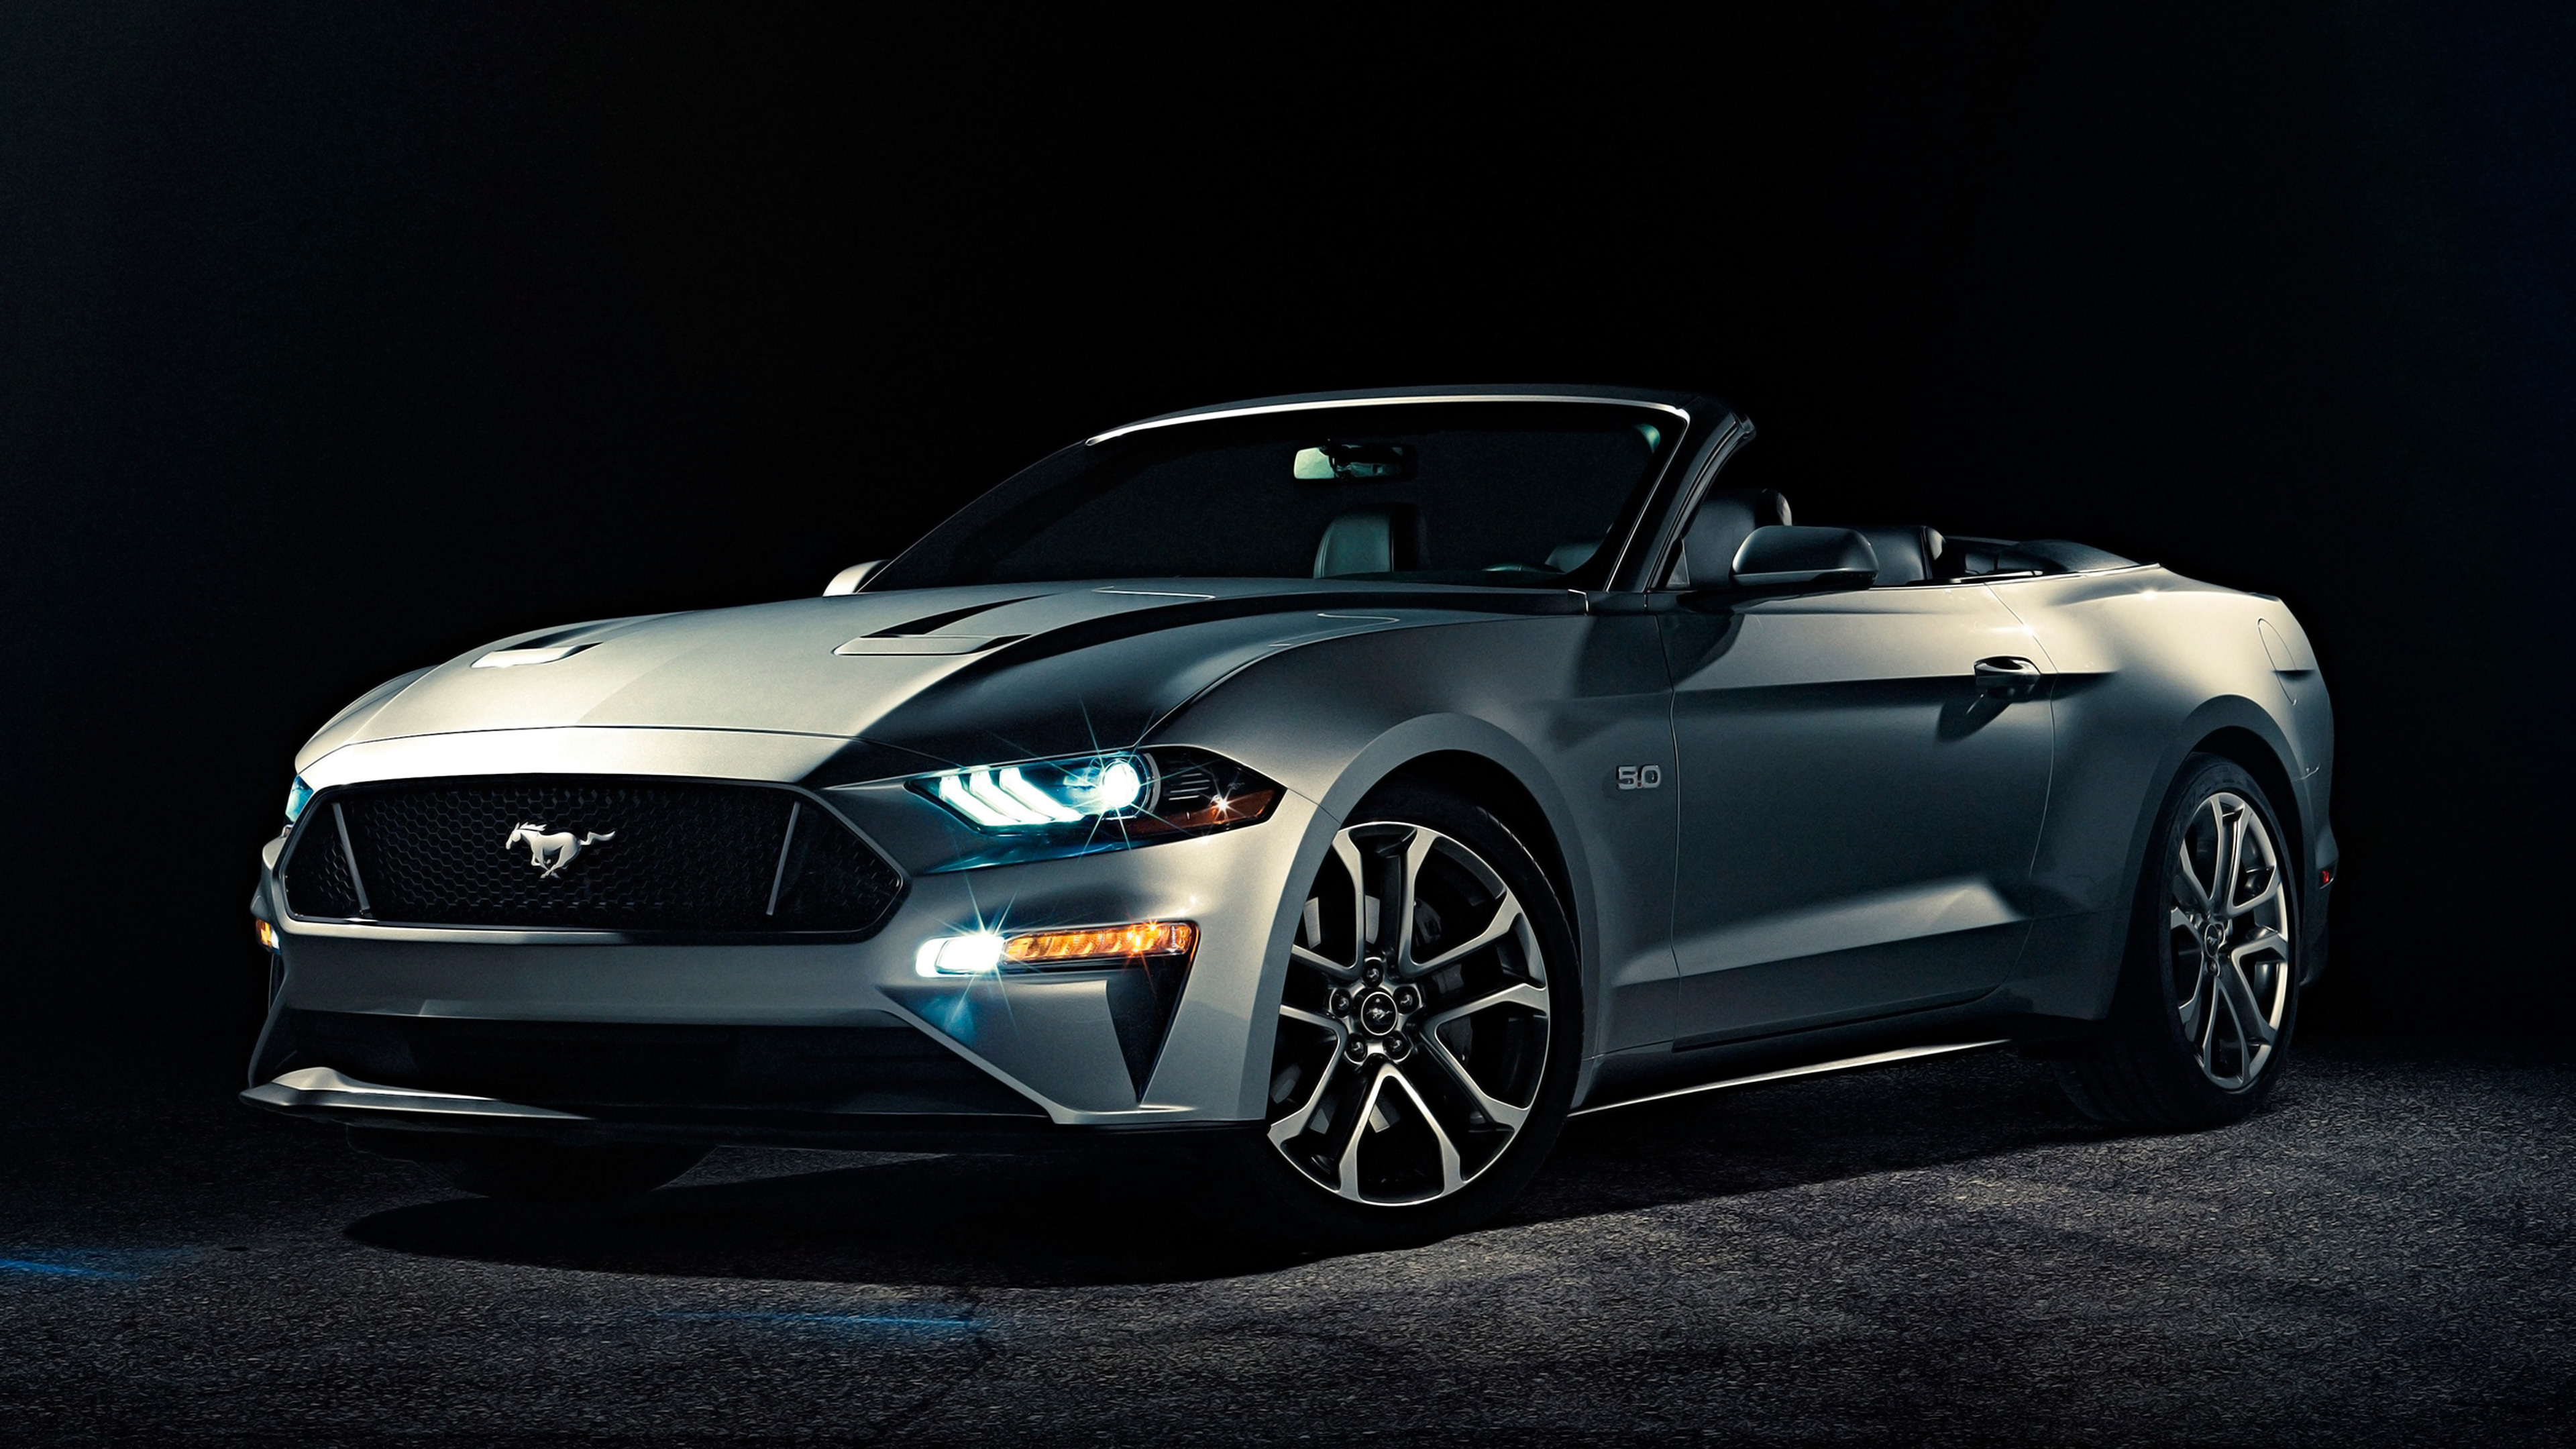 3840x2160 - Ford Convertible Wallpapers 11